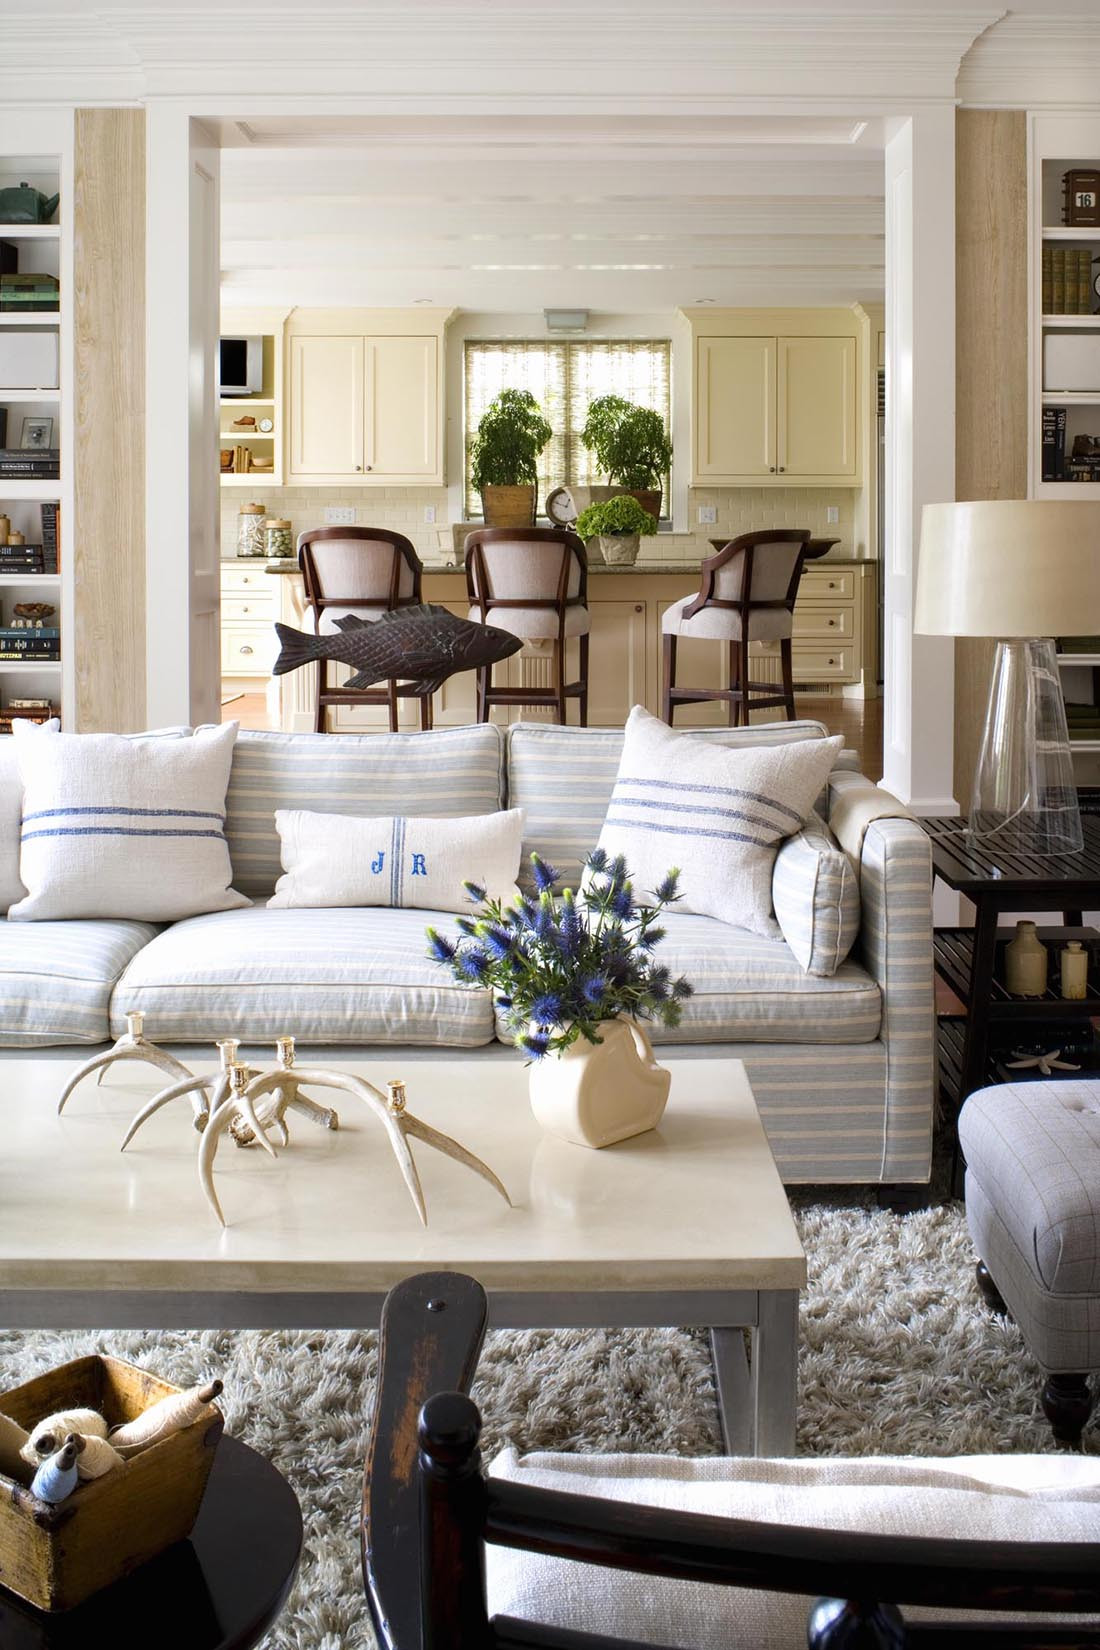 Best ideas about Decor For Living Room . Save or Pin Burnham Design Now.